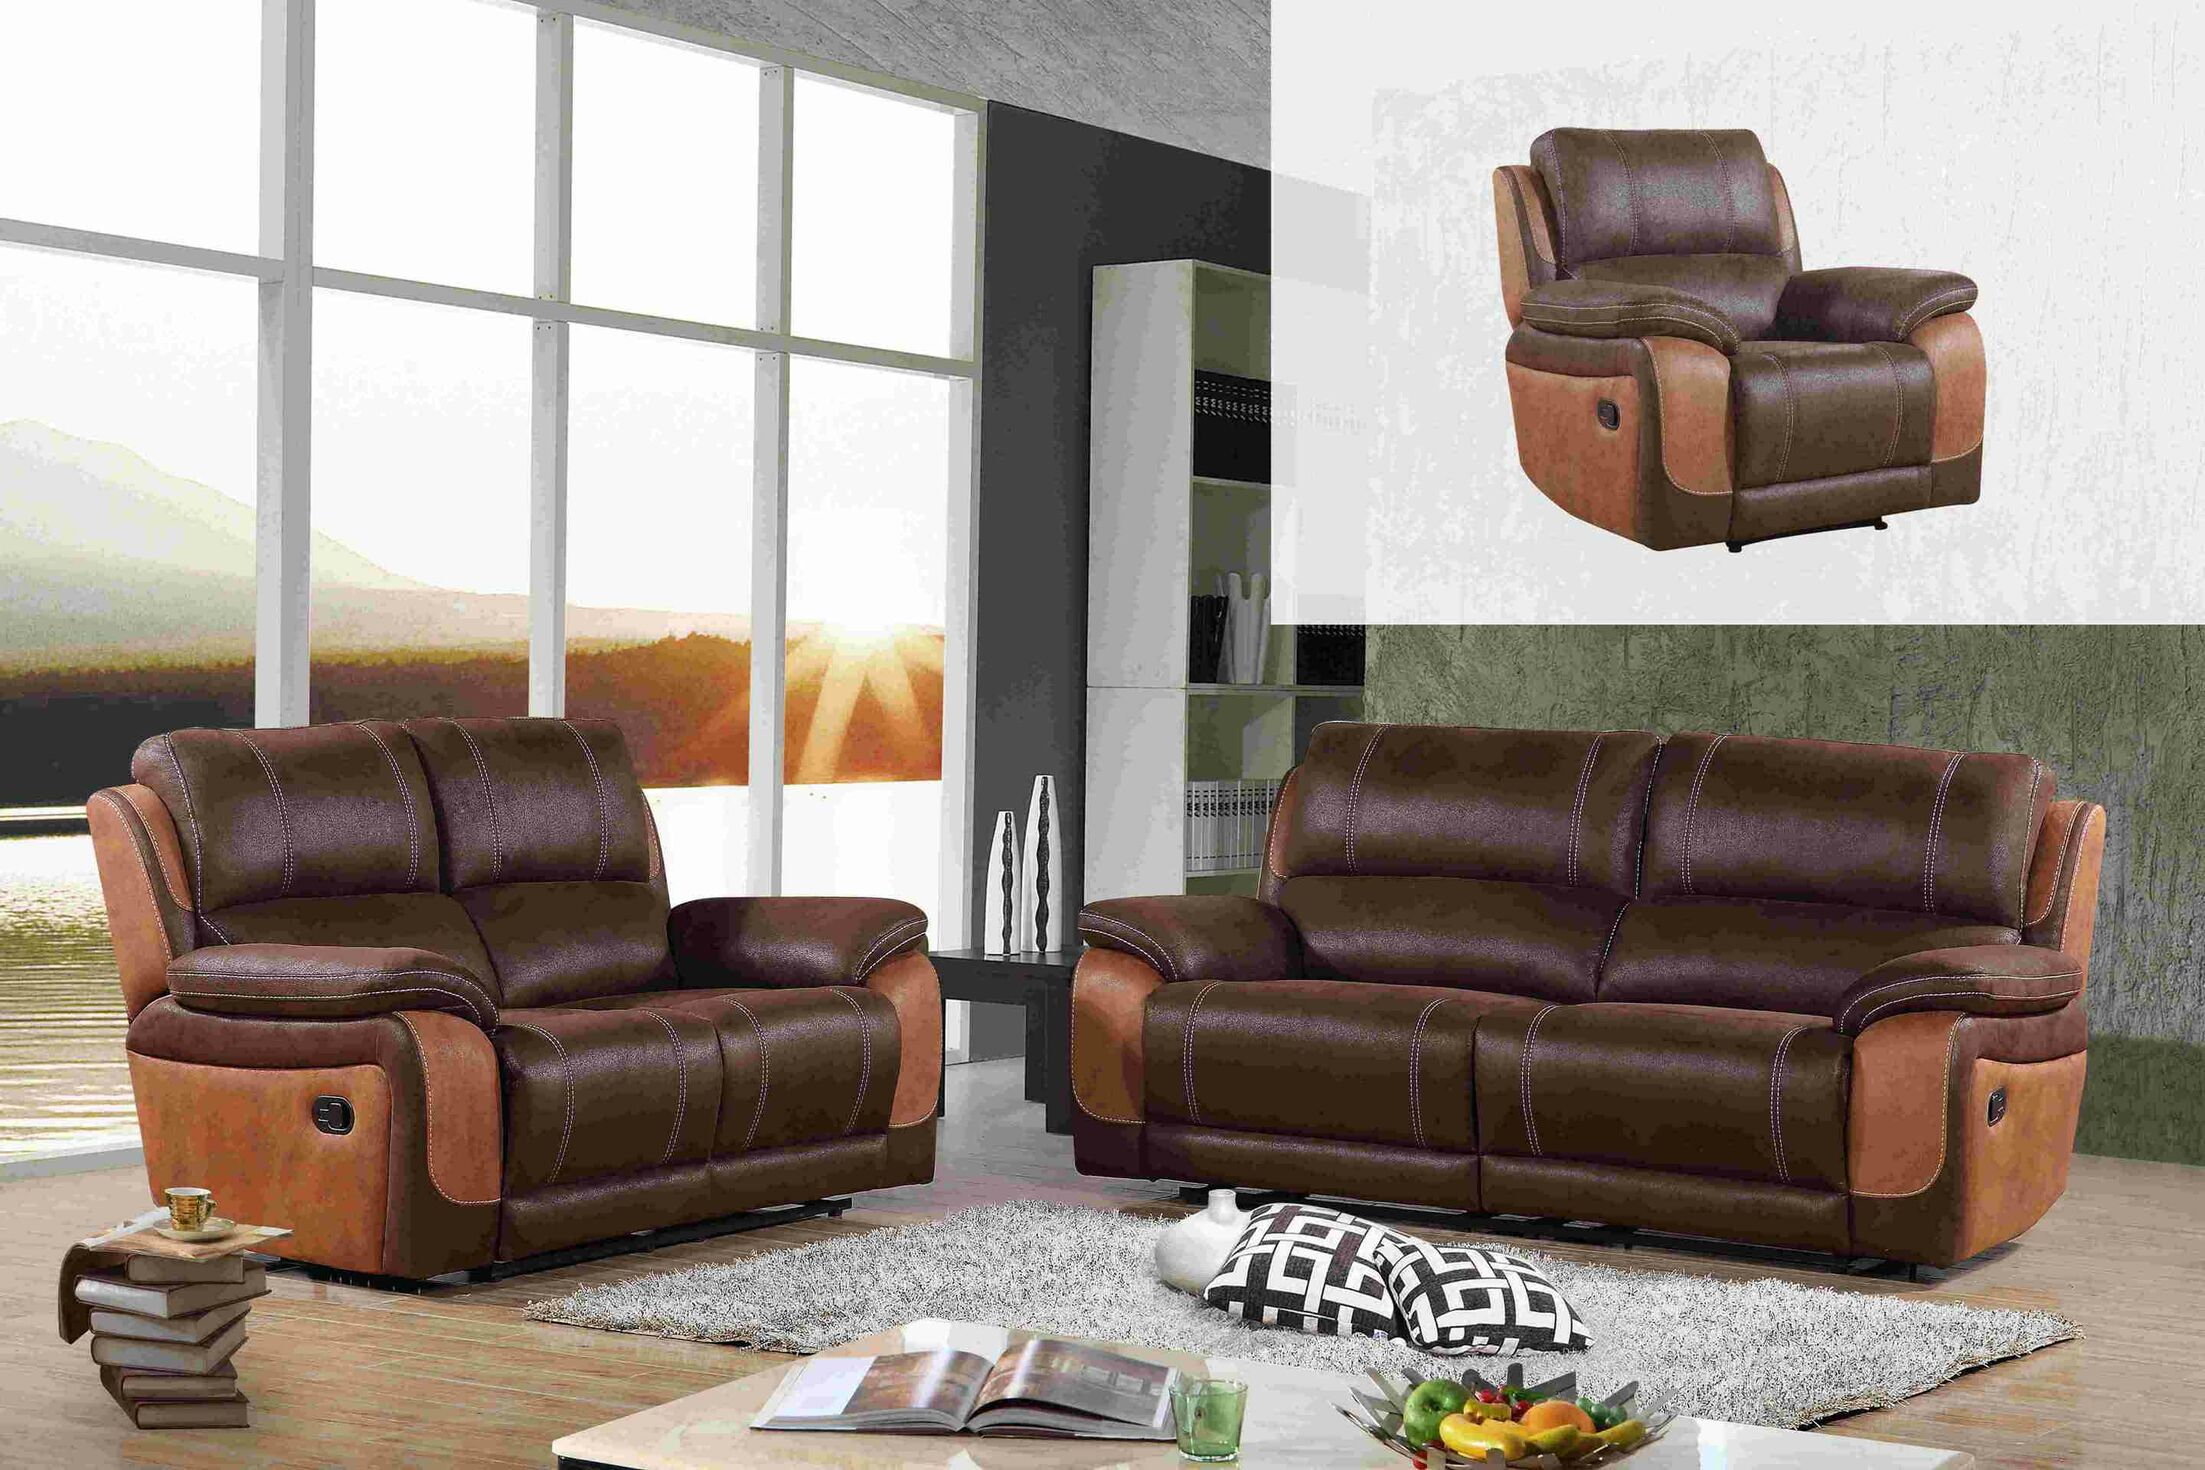 Whicker 3 Piece Living Room Set